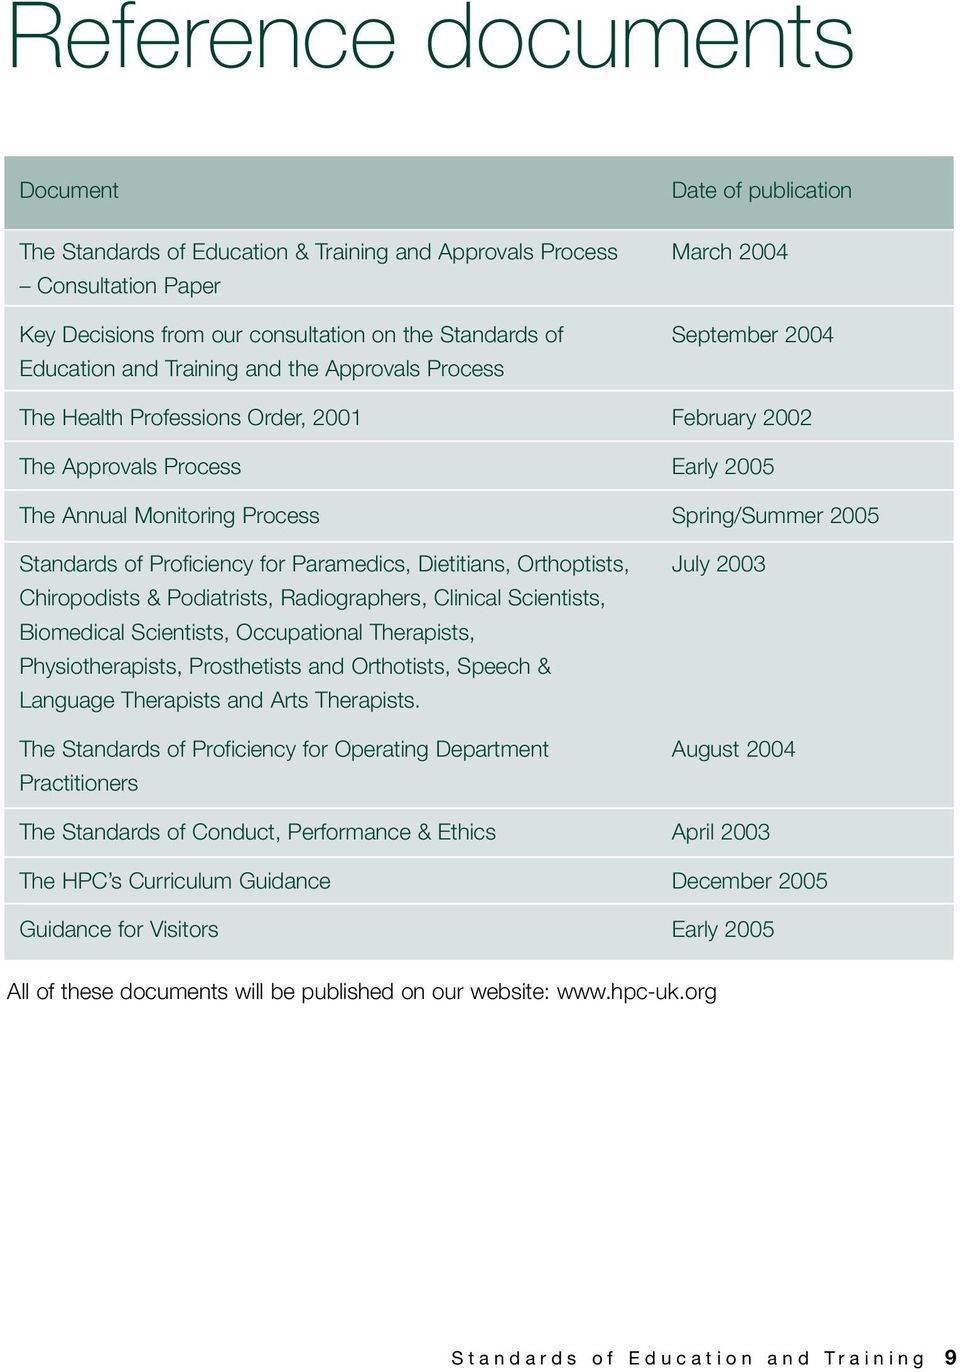 Standards of Proficiency for Paramedics, Dietitians, Orthoptists, July 2003 Chiropodists & Podiatrists, Radiographers, Clinical Scientists, Biomedical Scientists, Occupational Therapists,